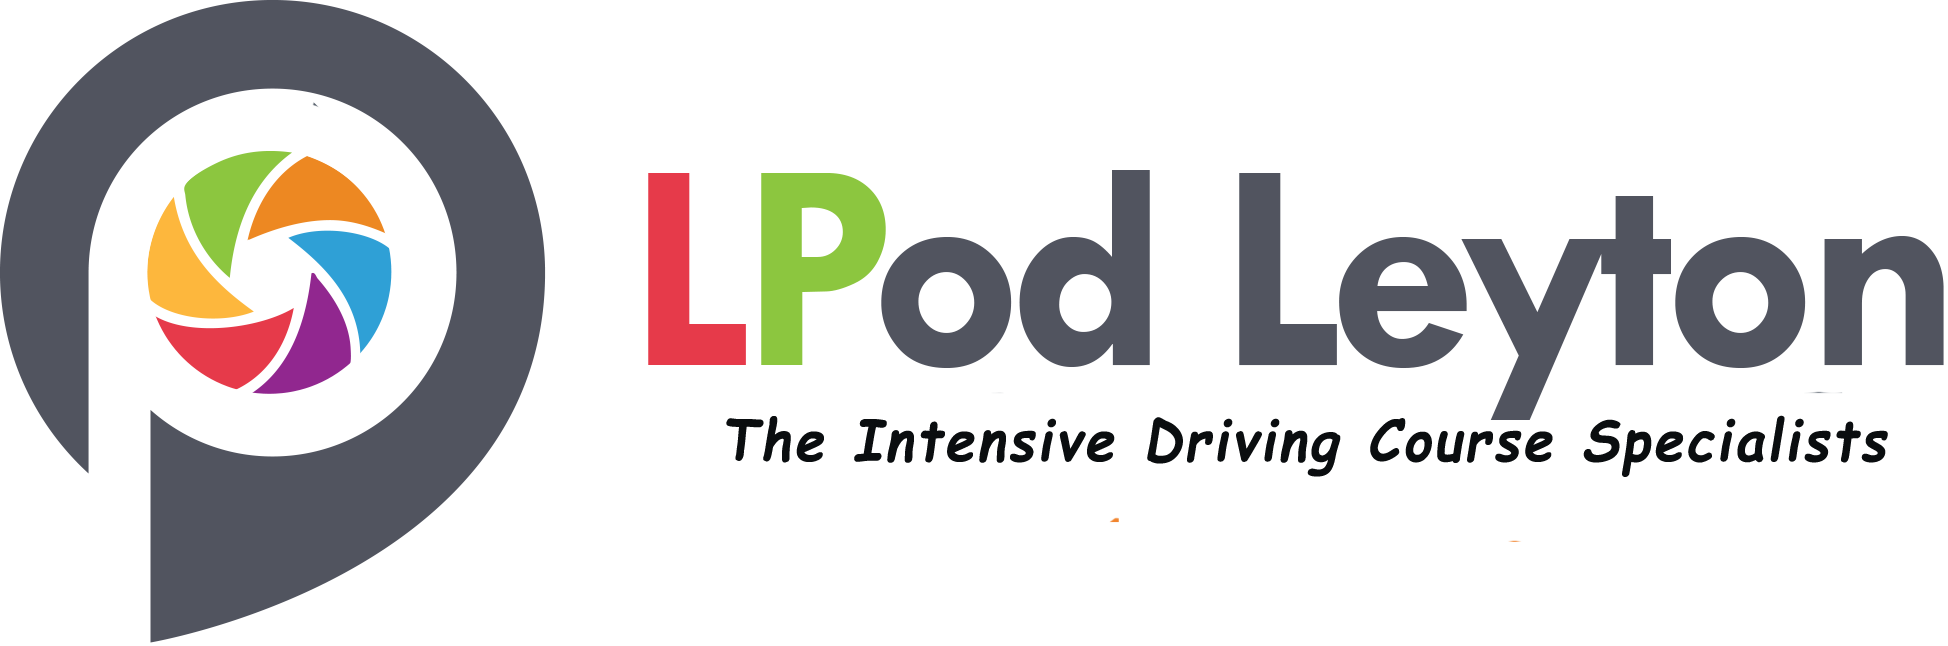 intensive driving courses Leyton, one week driving courses Leyton, fast pass driving courses Leyton, intensive driving course Leyton, driving school Leyton, automatic courses Leyton, automatic lessons Leyton, driving lessons Leyton,